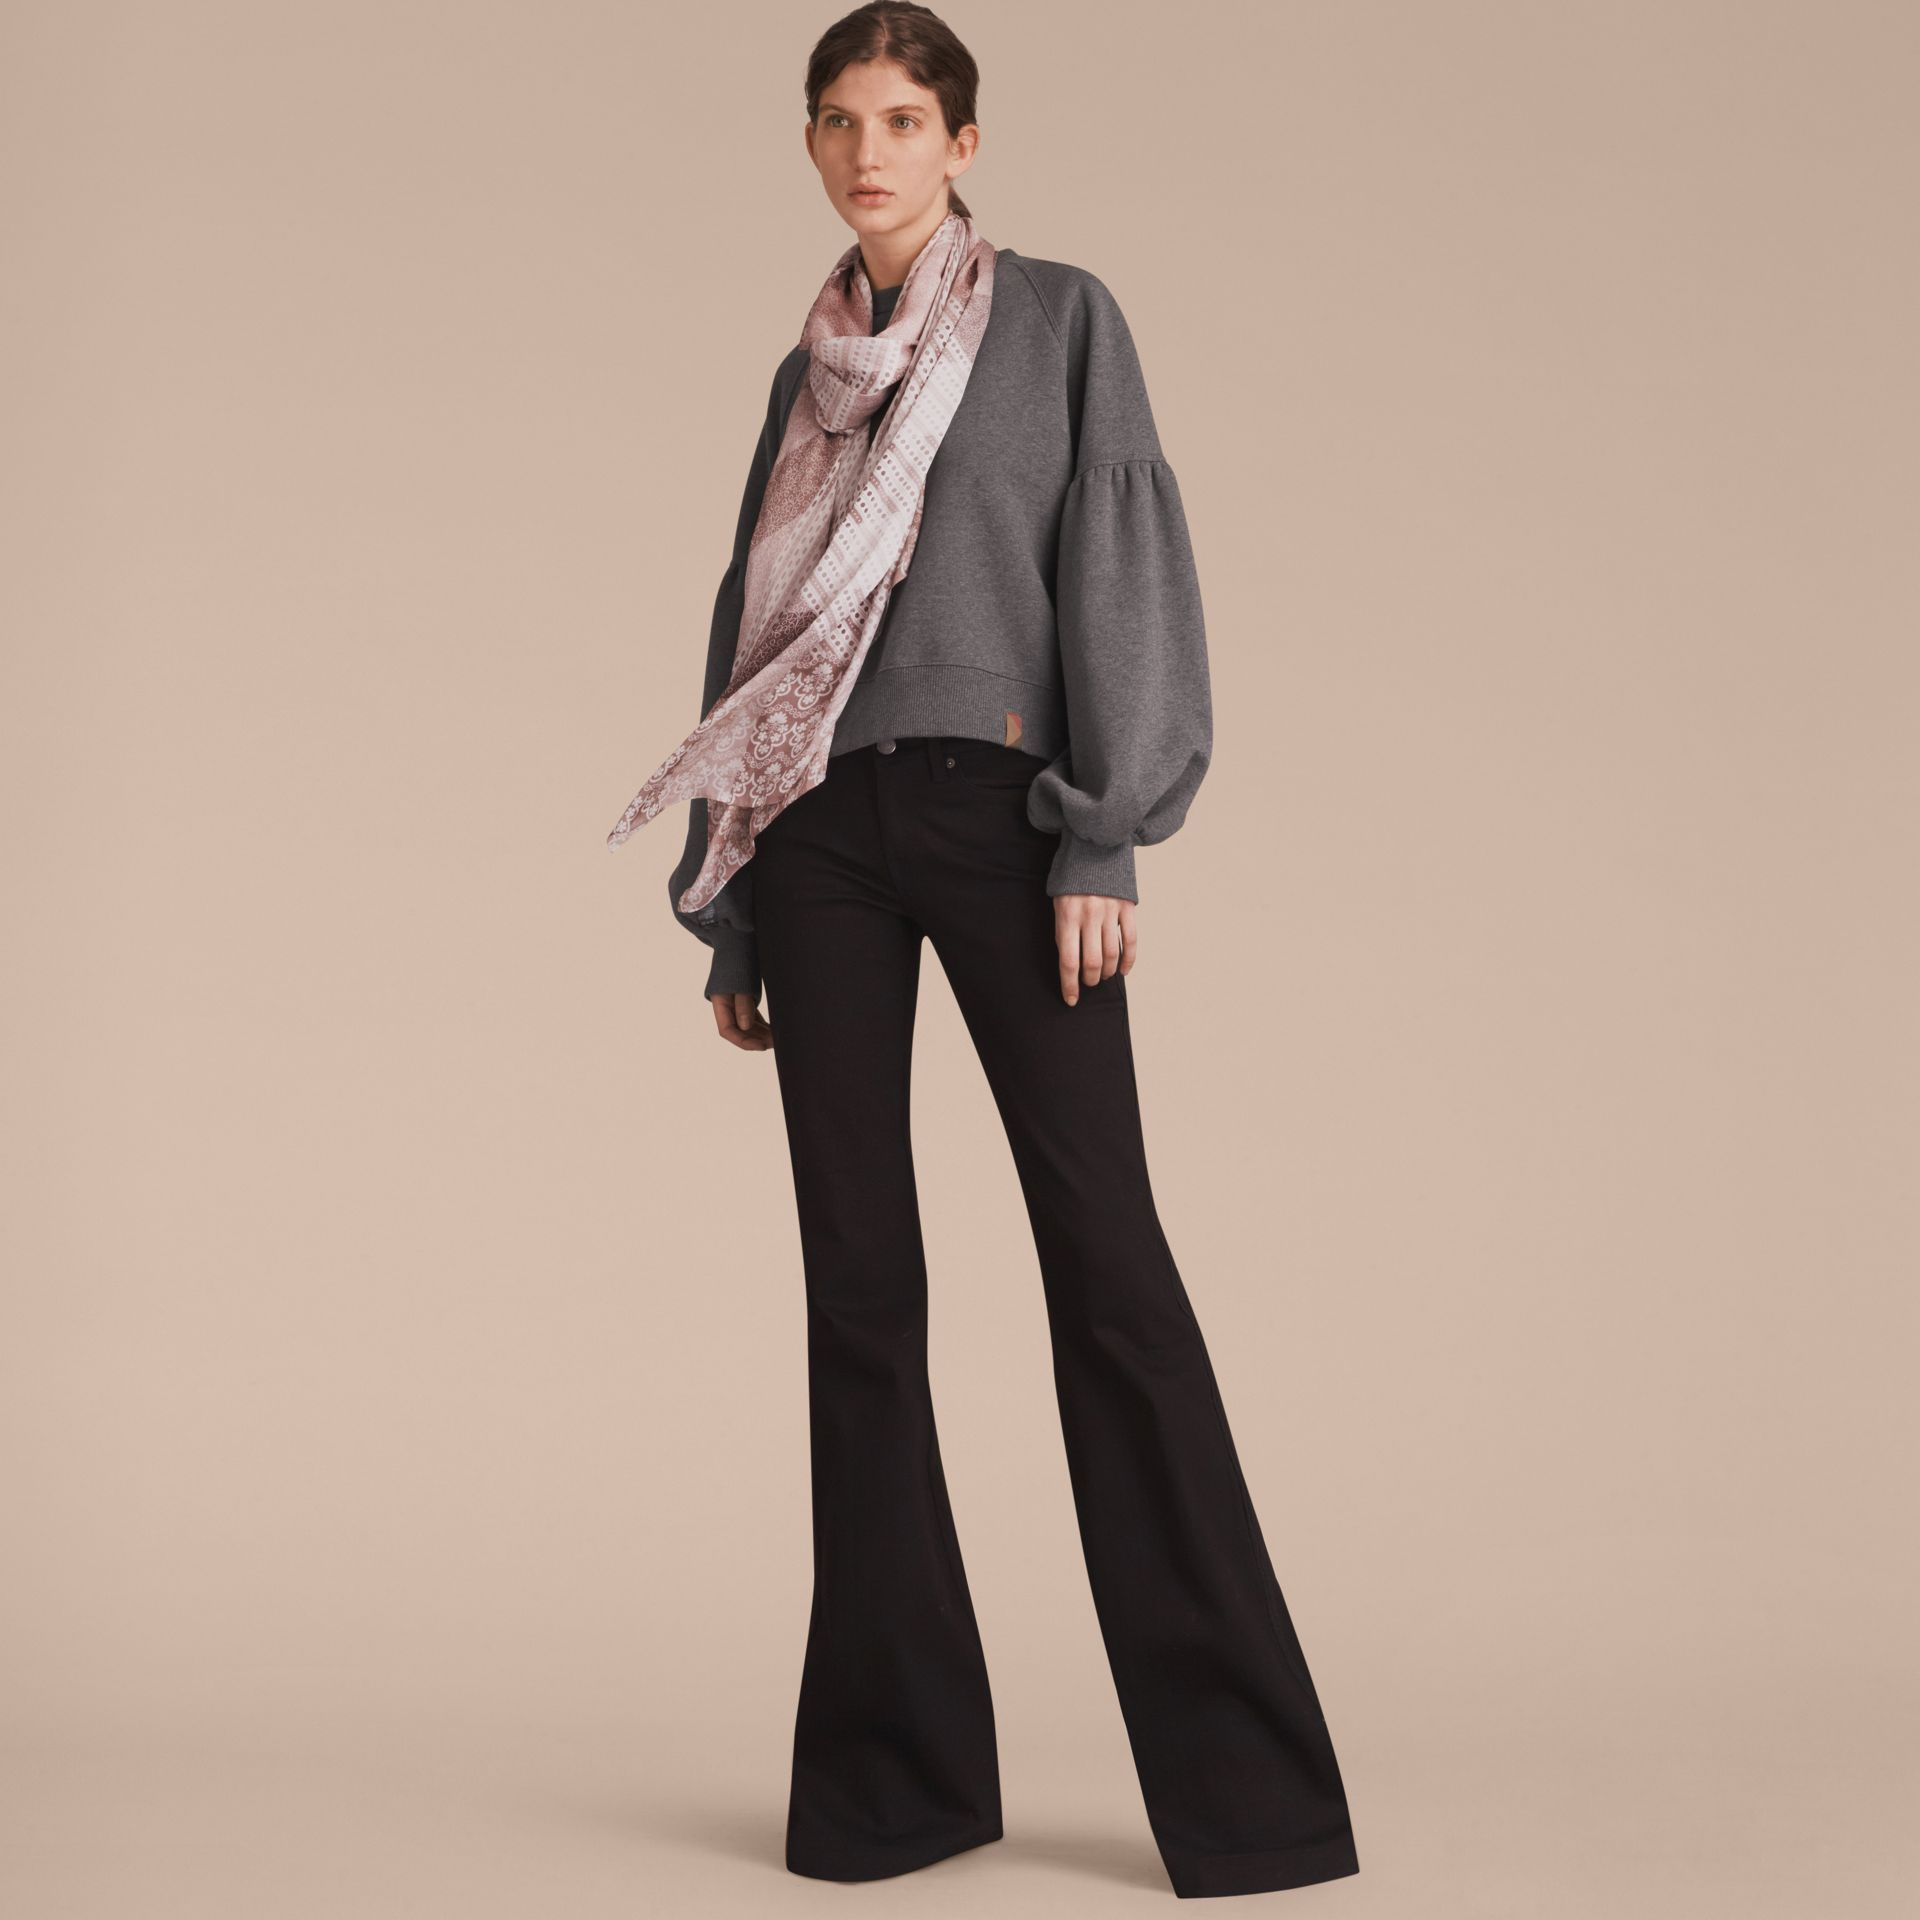 Floral Lace and Check Print Silk Scarf in Ash Rose - Women | Burberry - gallery image 3